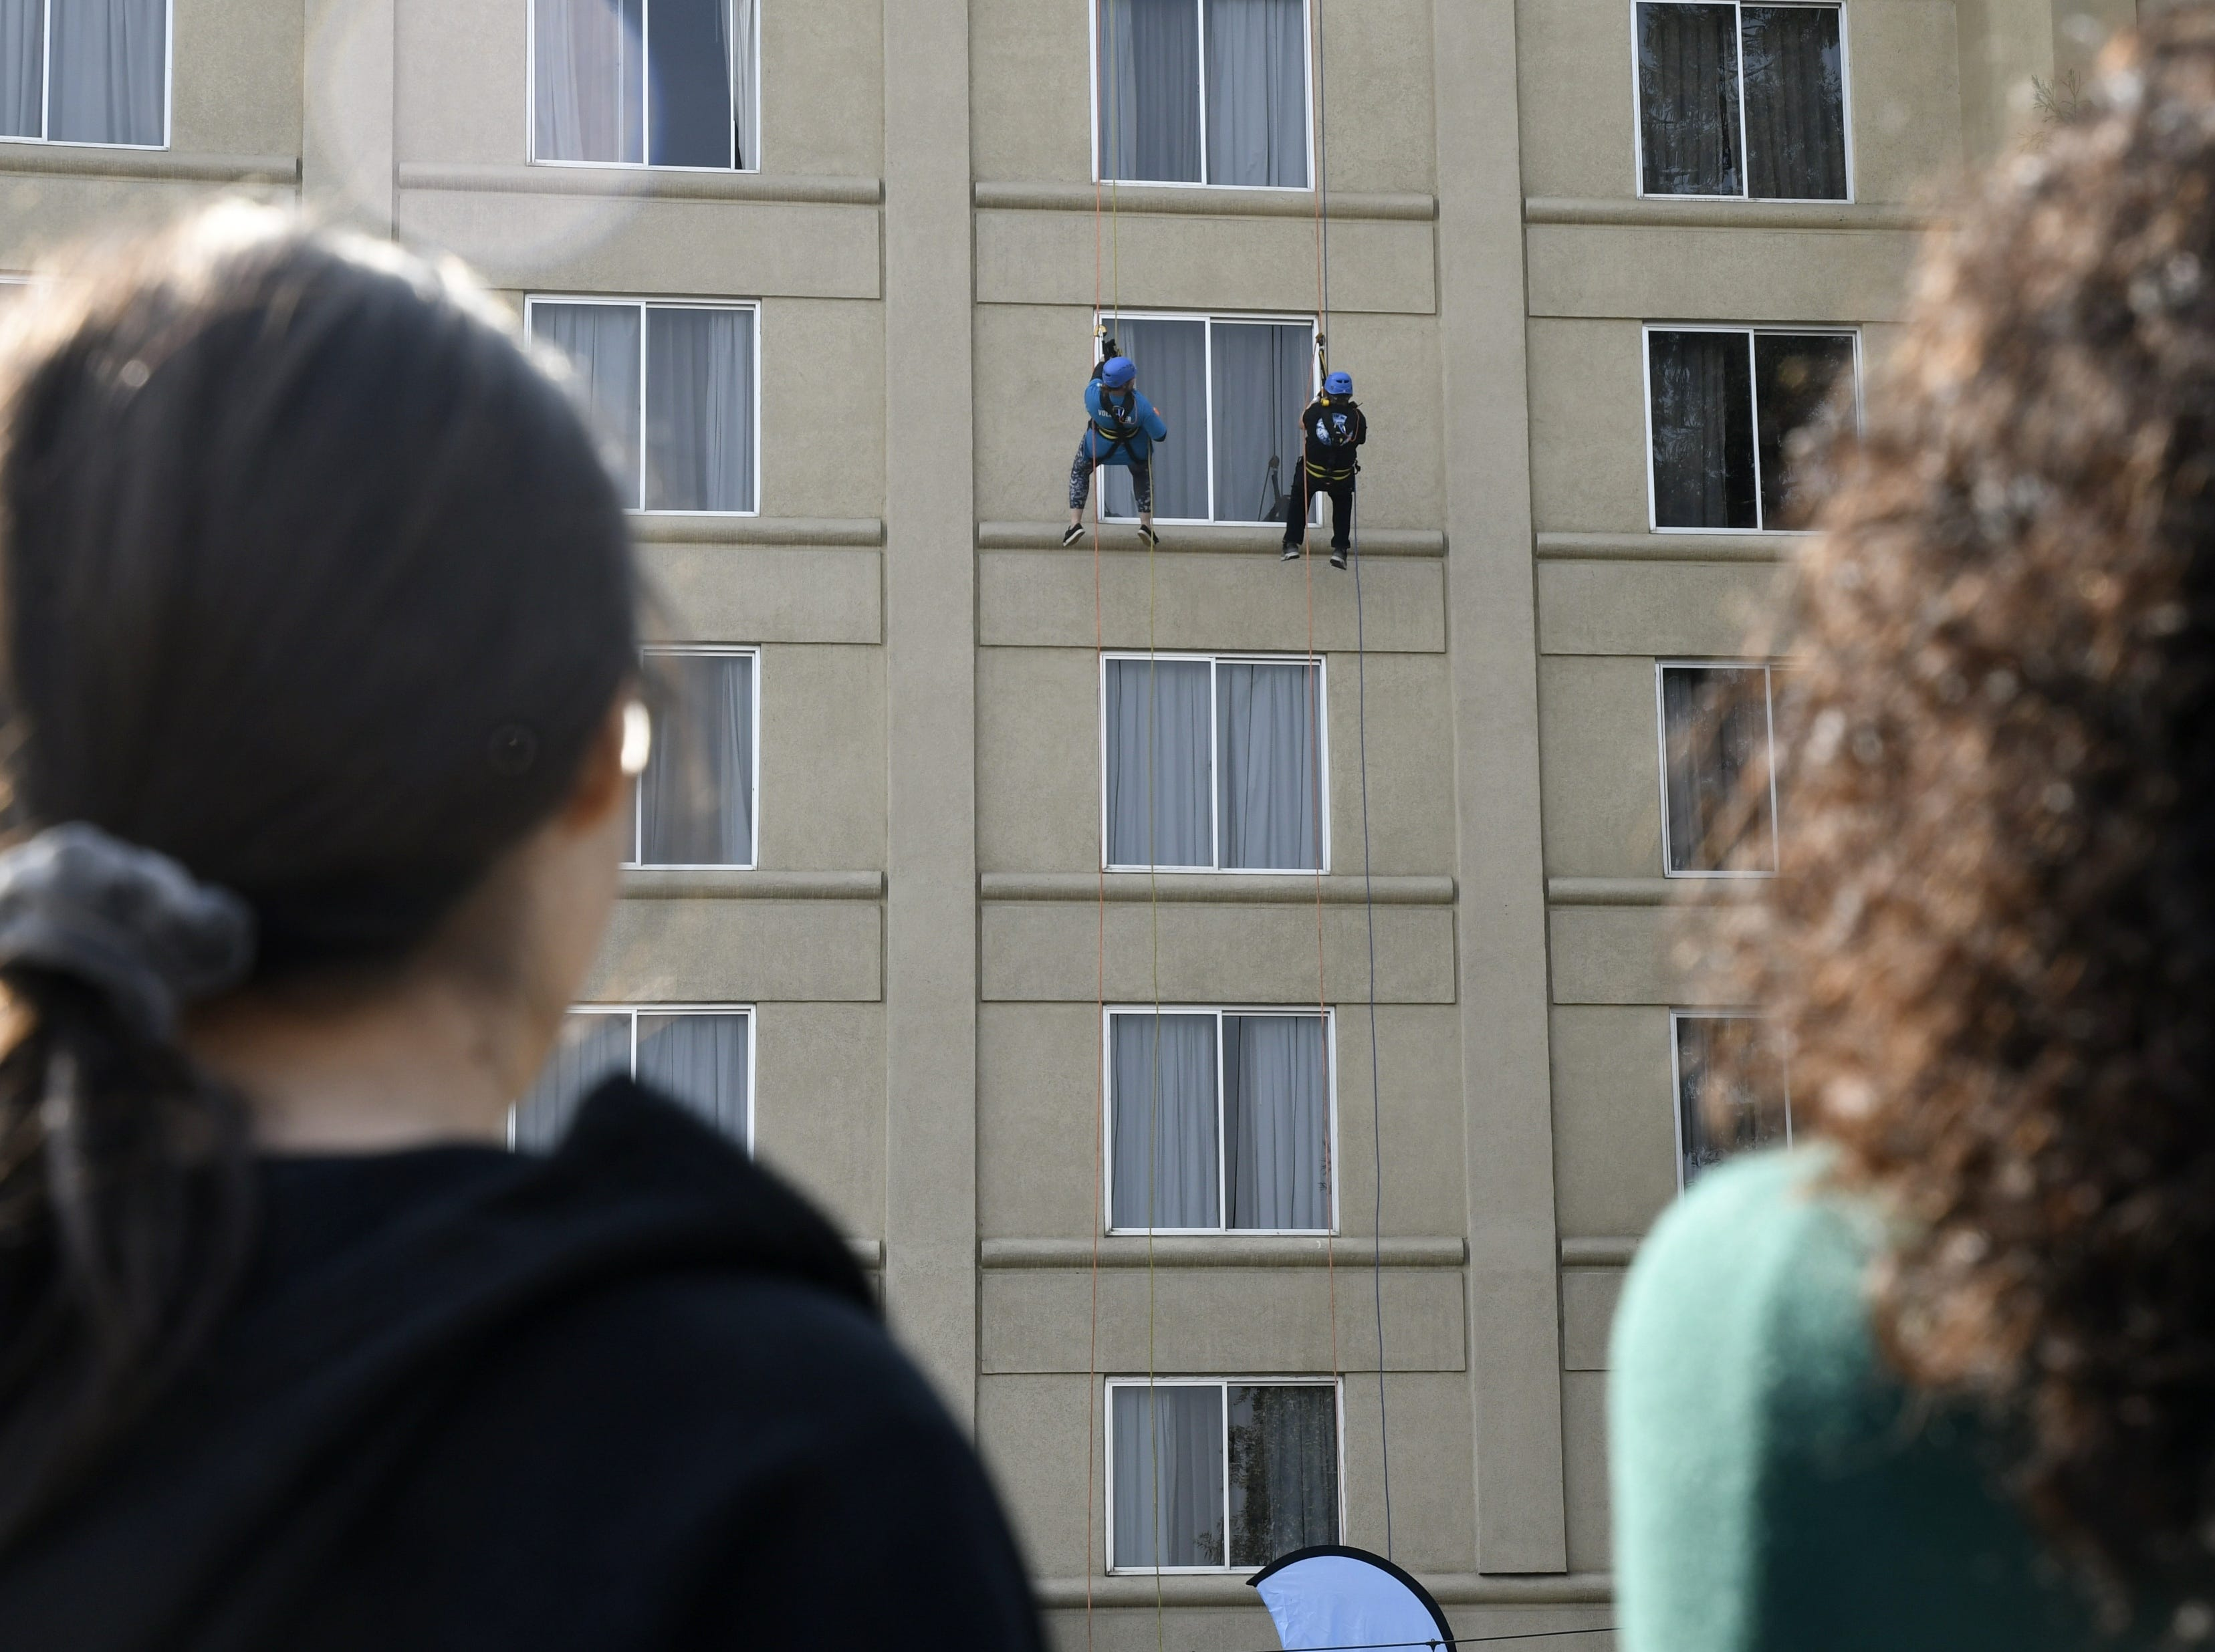 Community members rappel down the side of the Visalia Marriott at the Convention Center in downtown Visalia for the first Over the Edge fundraising event for The Source LGBT+ Center on Saturday, November 10, 2018.